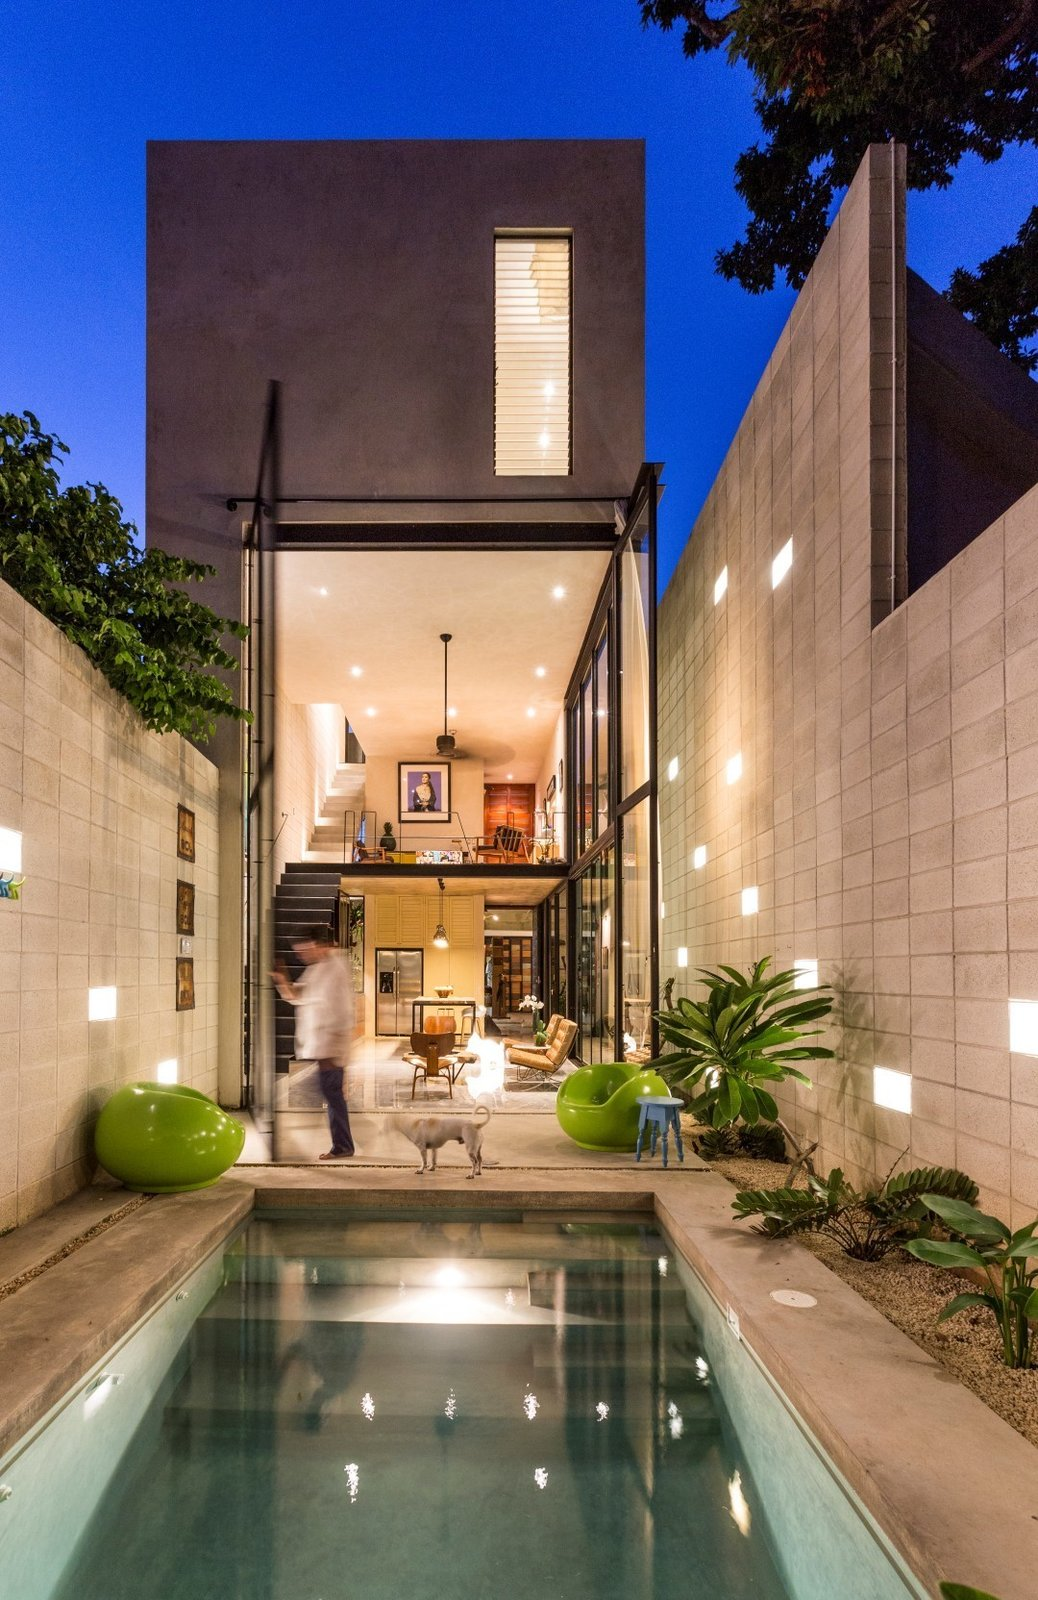 "The back of the home glows at night as the giant, two-story glass doors swing open to remove the barrier between inside and out. A polished concrete patio deck and pool, along with a simple block perimeter wall, make smart use of available materials. The pool acts as a passive conditioning tool, cooling air before it enters the house. The block wall is positioned 31 inches from the house, creating a gap or ""air chimney"" that allows air to circulate up and away from the home, while simultaneously letting light filter down. Tagged: Outdoor, Back Yard, Shrubs, Small Pools, Tubs, Shower, and Small Patio, Porch, Deck.  Modern Pool Design by Dwell from A Sustainable Mexican Retreat Made of Raw, Readily Available Materials"